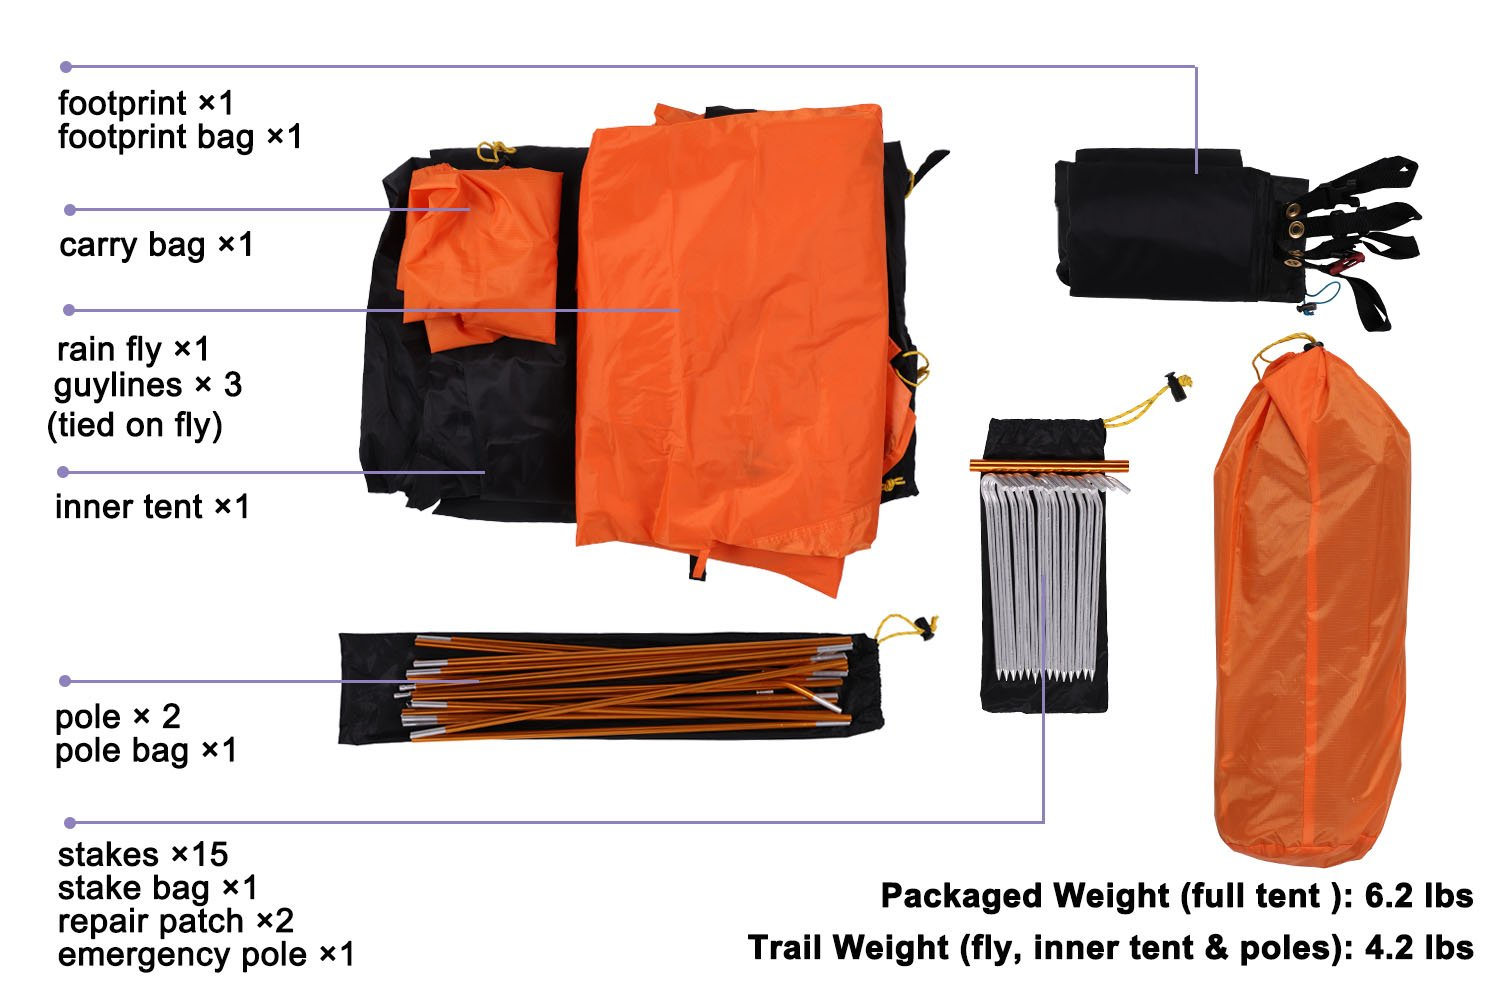 Orange Waterproof and Easy Setup 3 Season MIER 1-2 Person Backpacking Tent Free-Standing Camping Tent with Footprint